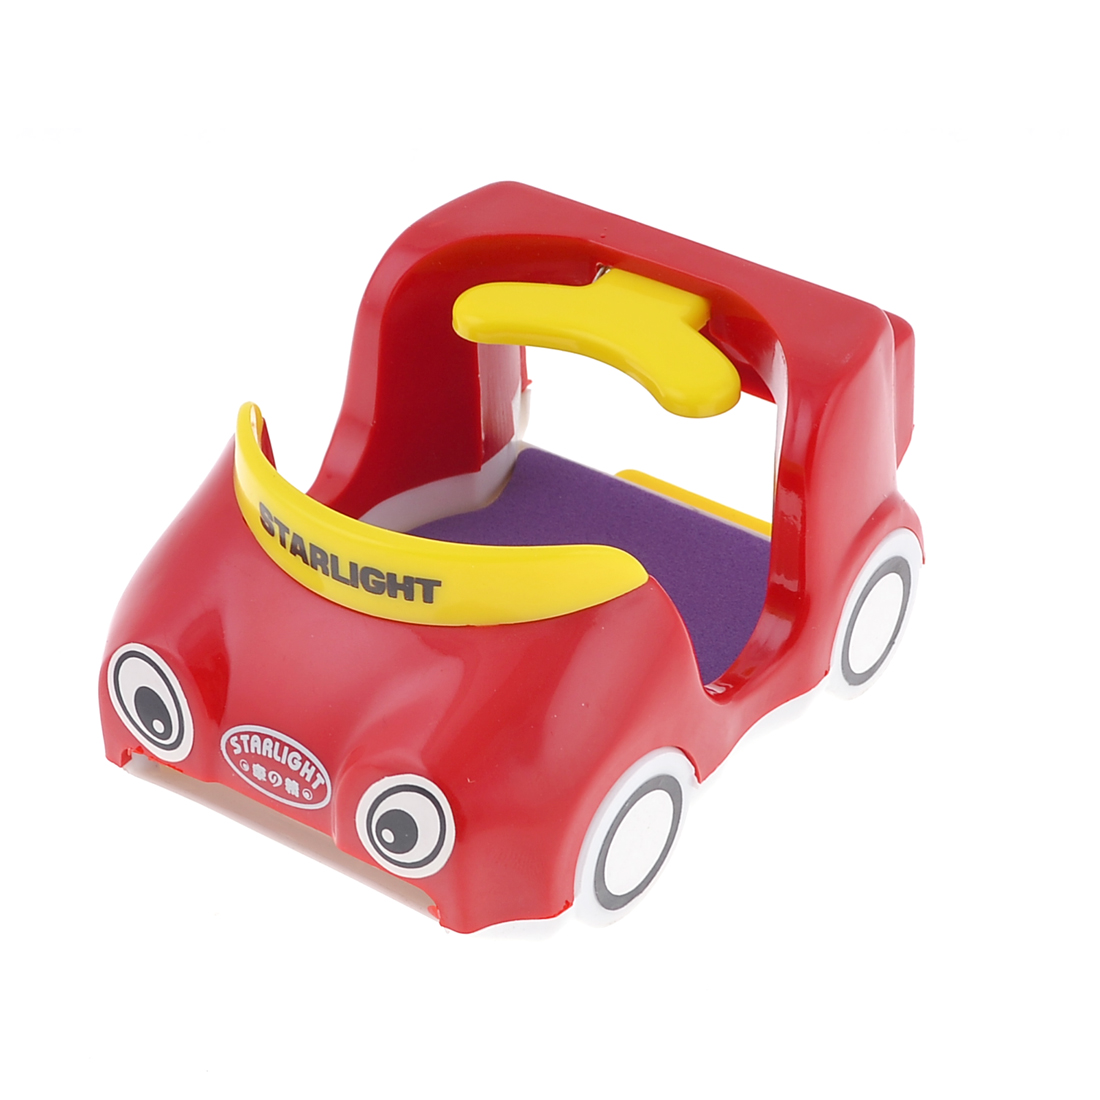 Portable Plastic Cartoon Car Designed Car Cup Holder for Drink Water Red